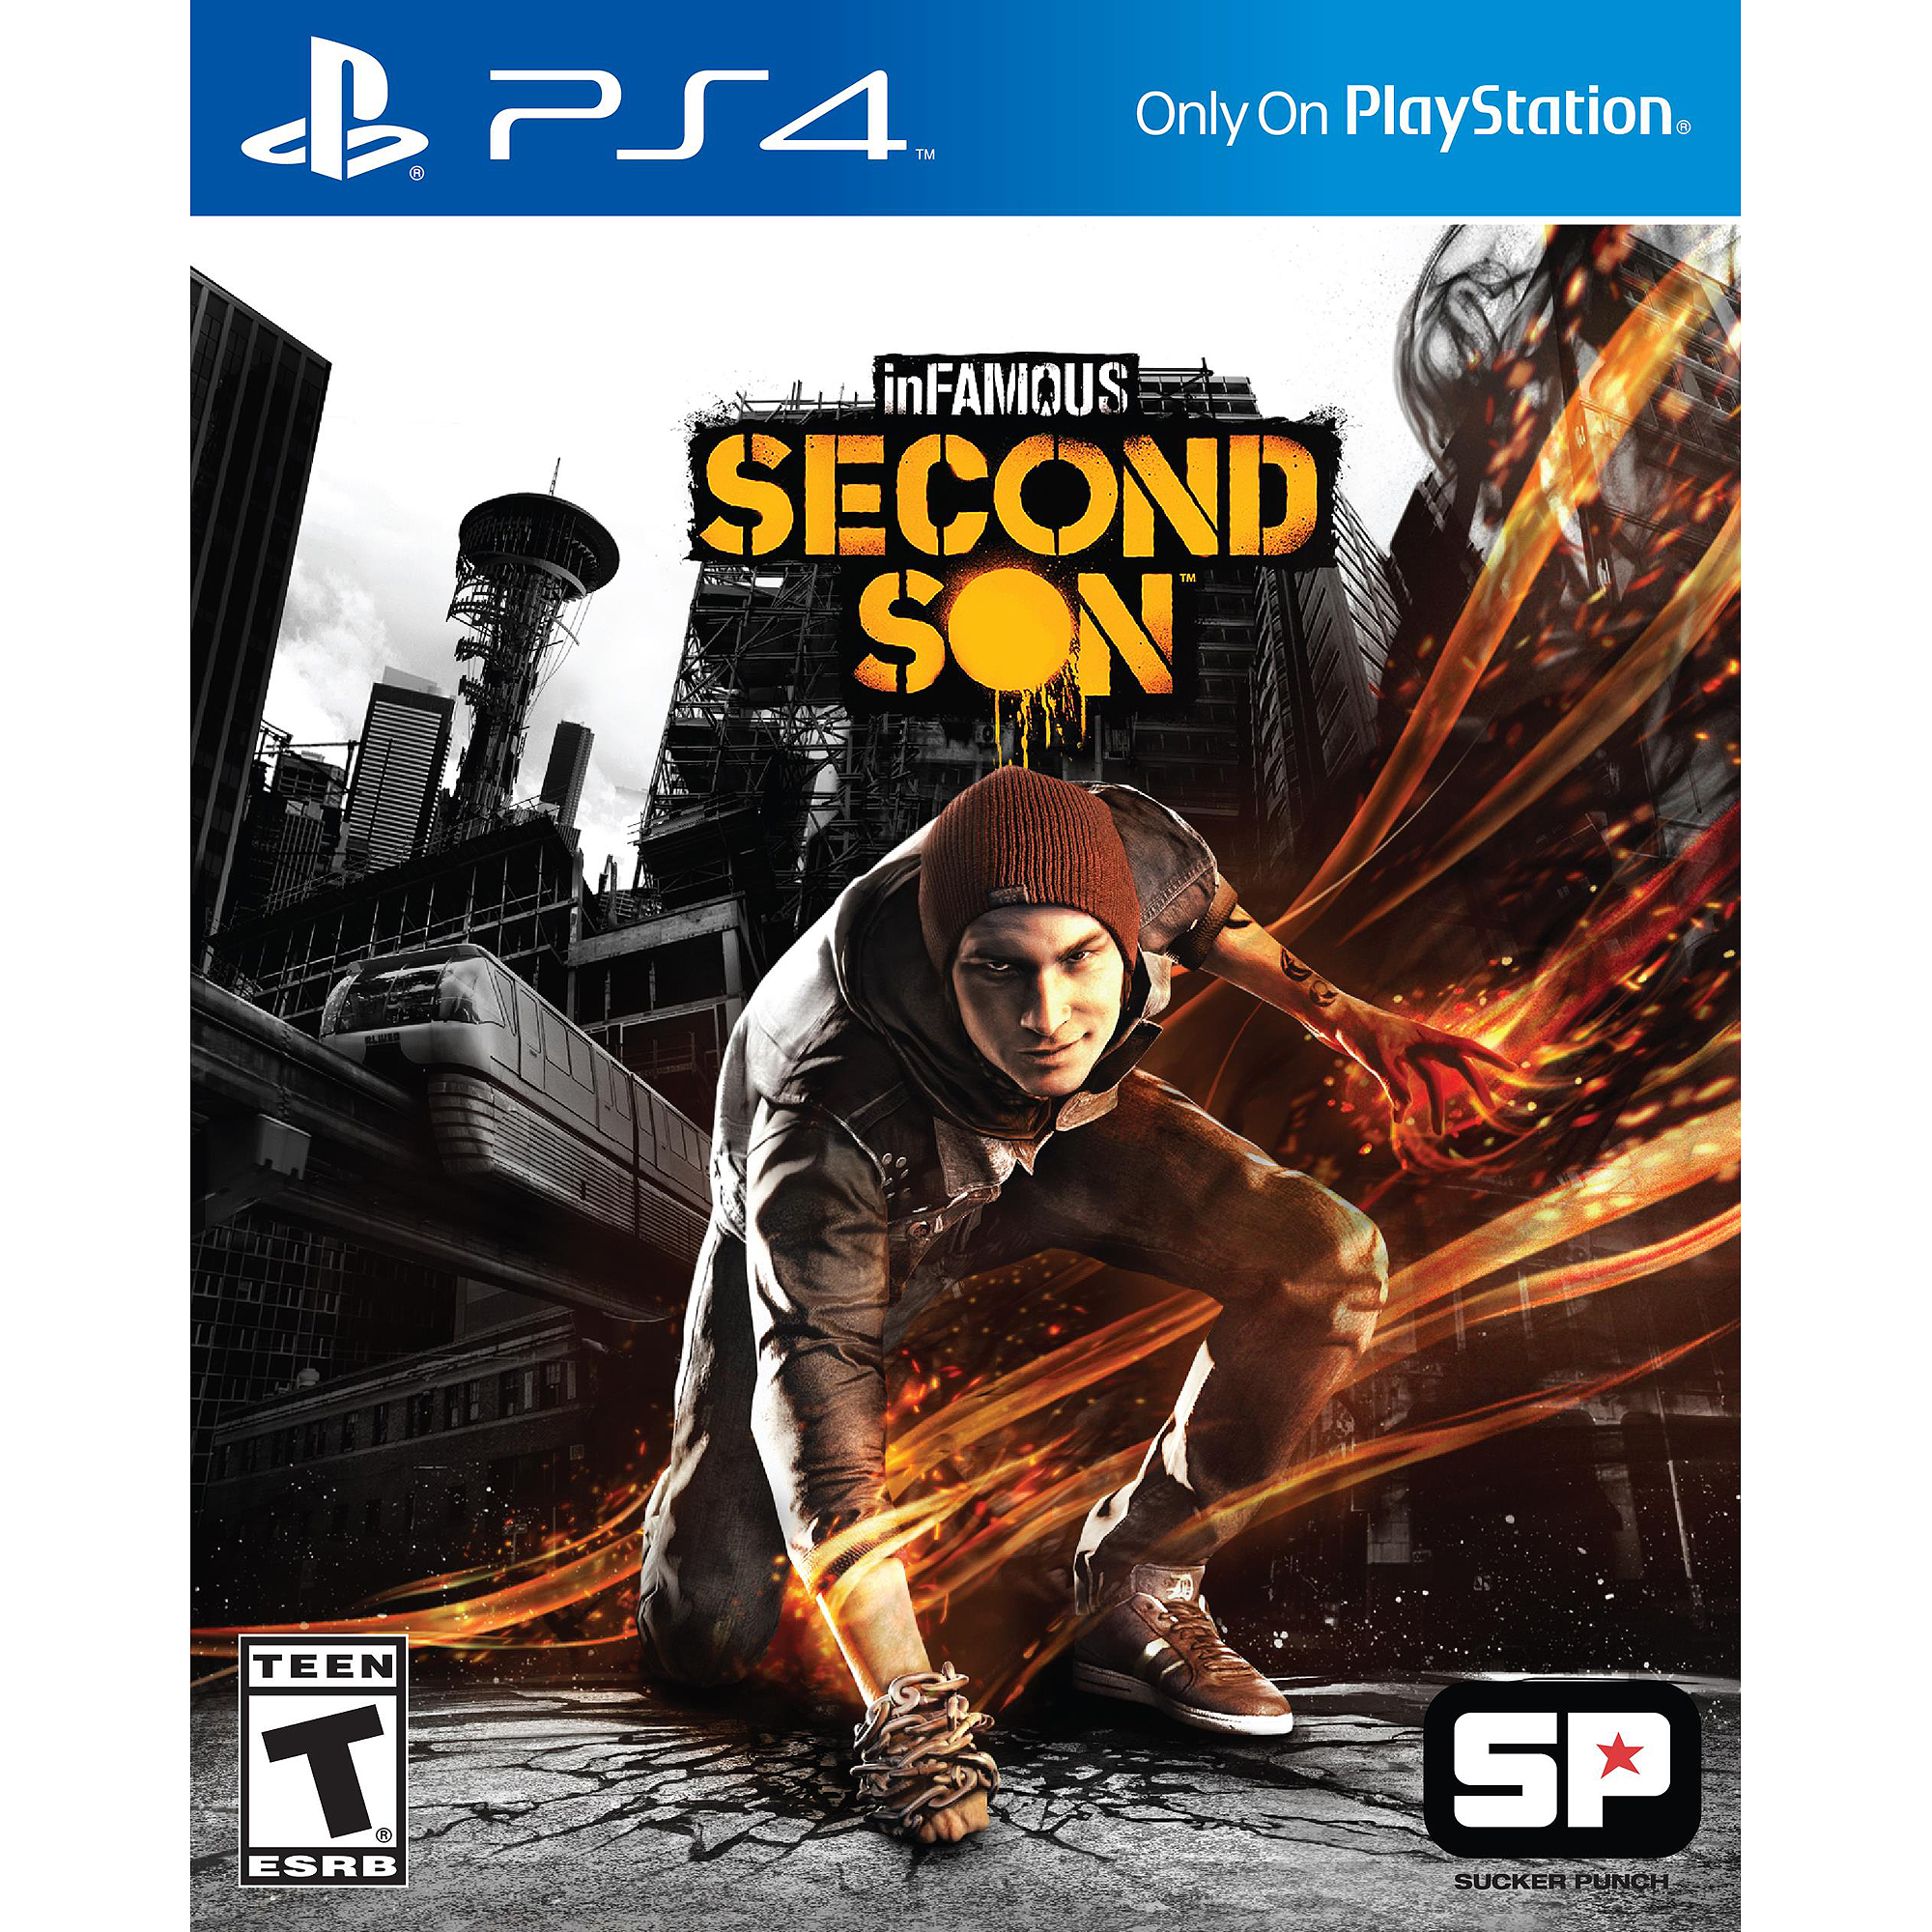 Infamous: Second Son (Playstation 4) by SCEA